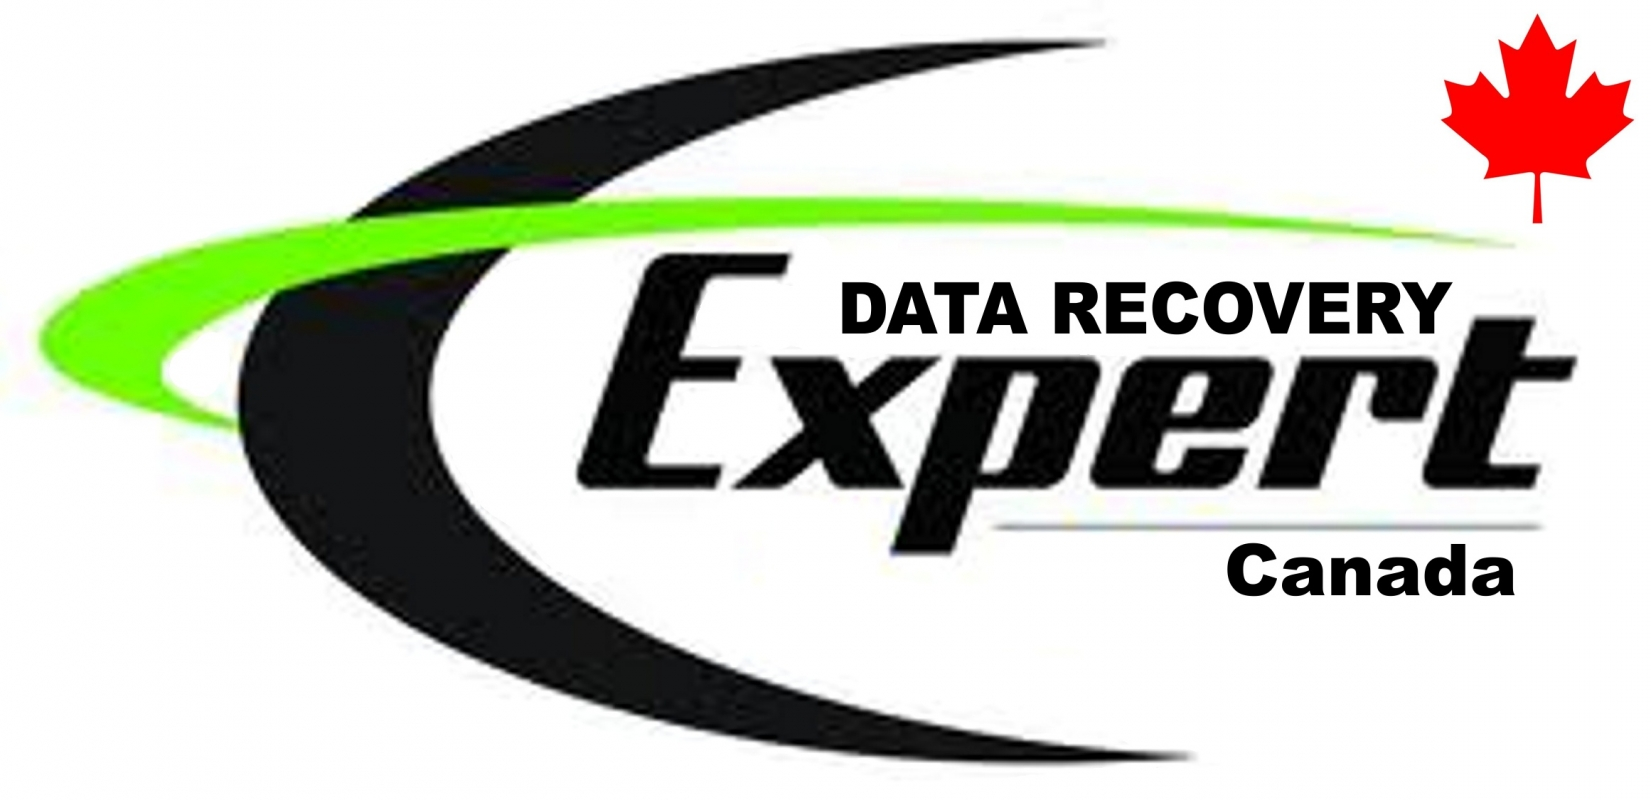 Data center disaster recovery certification